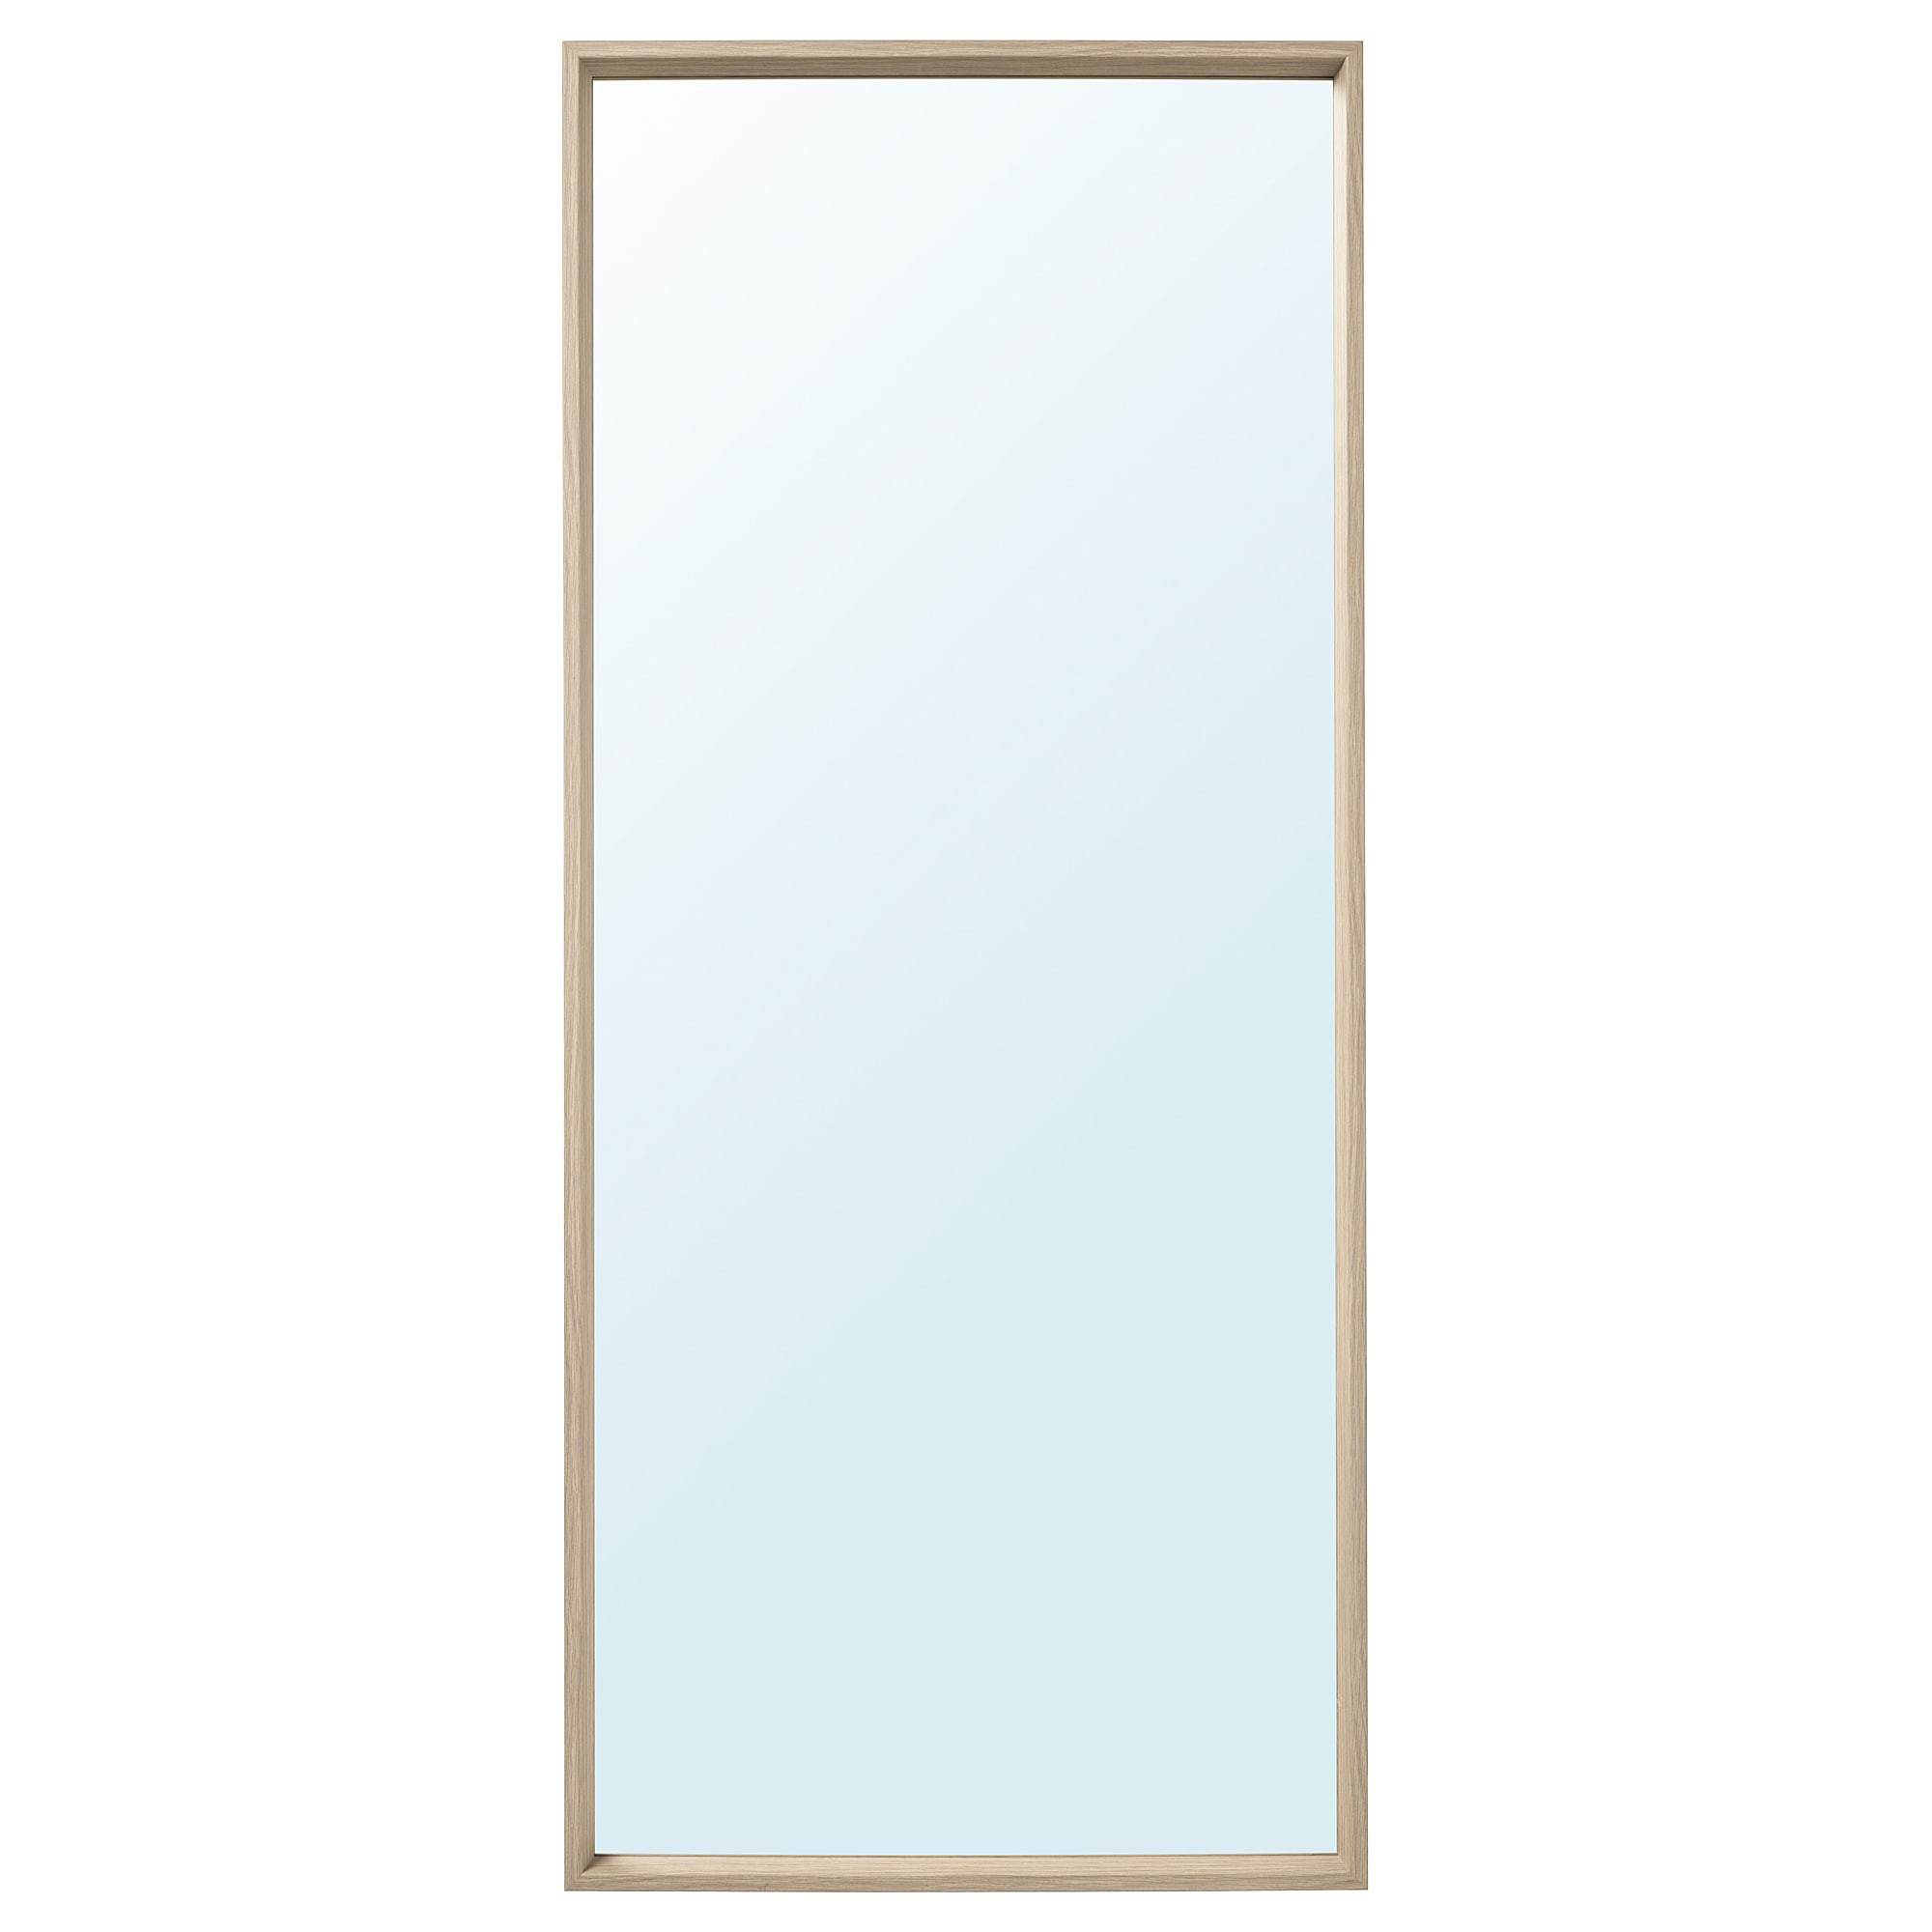 ikea nissedal mirror can be hung horizontally or vertically